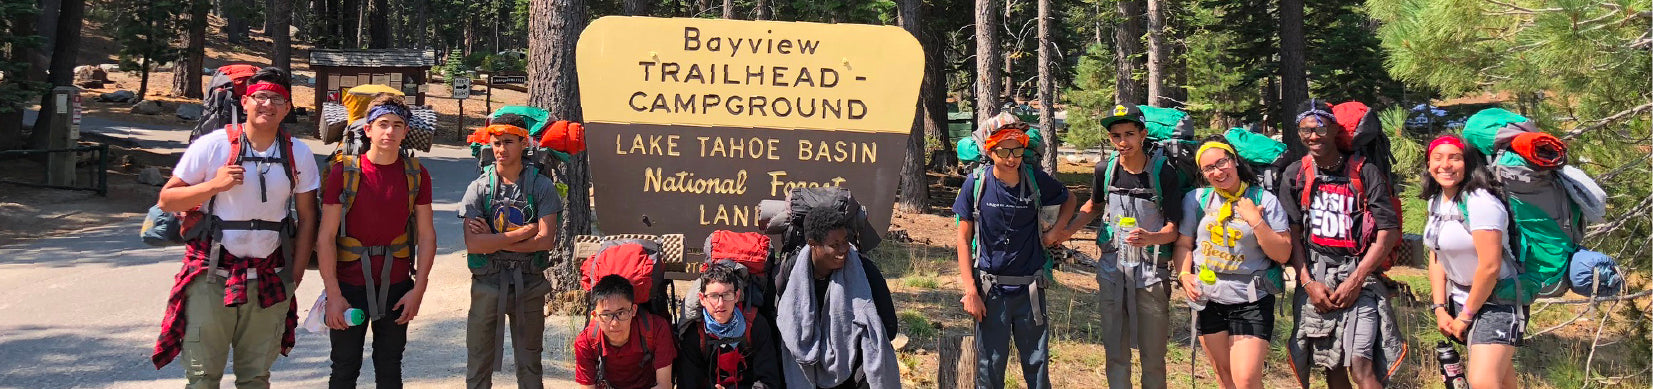 YMCA kids posed for a group picture in front of Bayview Campground trailhead sign